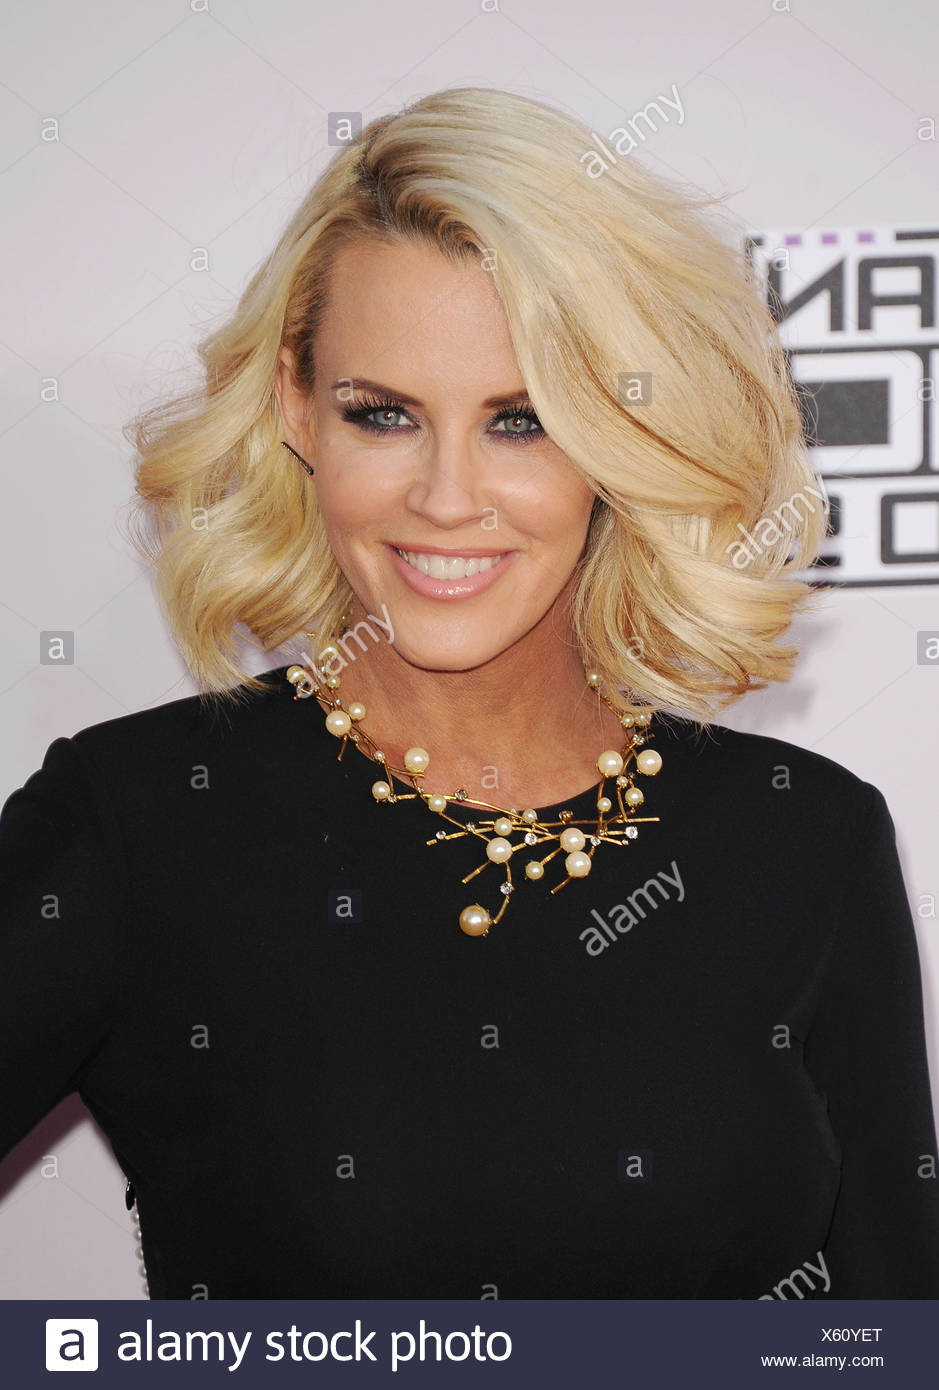 TV personality Jenny McCarthy arrives at the 2014 American Music Awards at Nokia Theatre L.A. Live on November 23, 2014 in Los Angeles, California., Additional-Rights-Clearances-NA - Stock Image